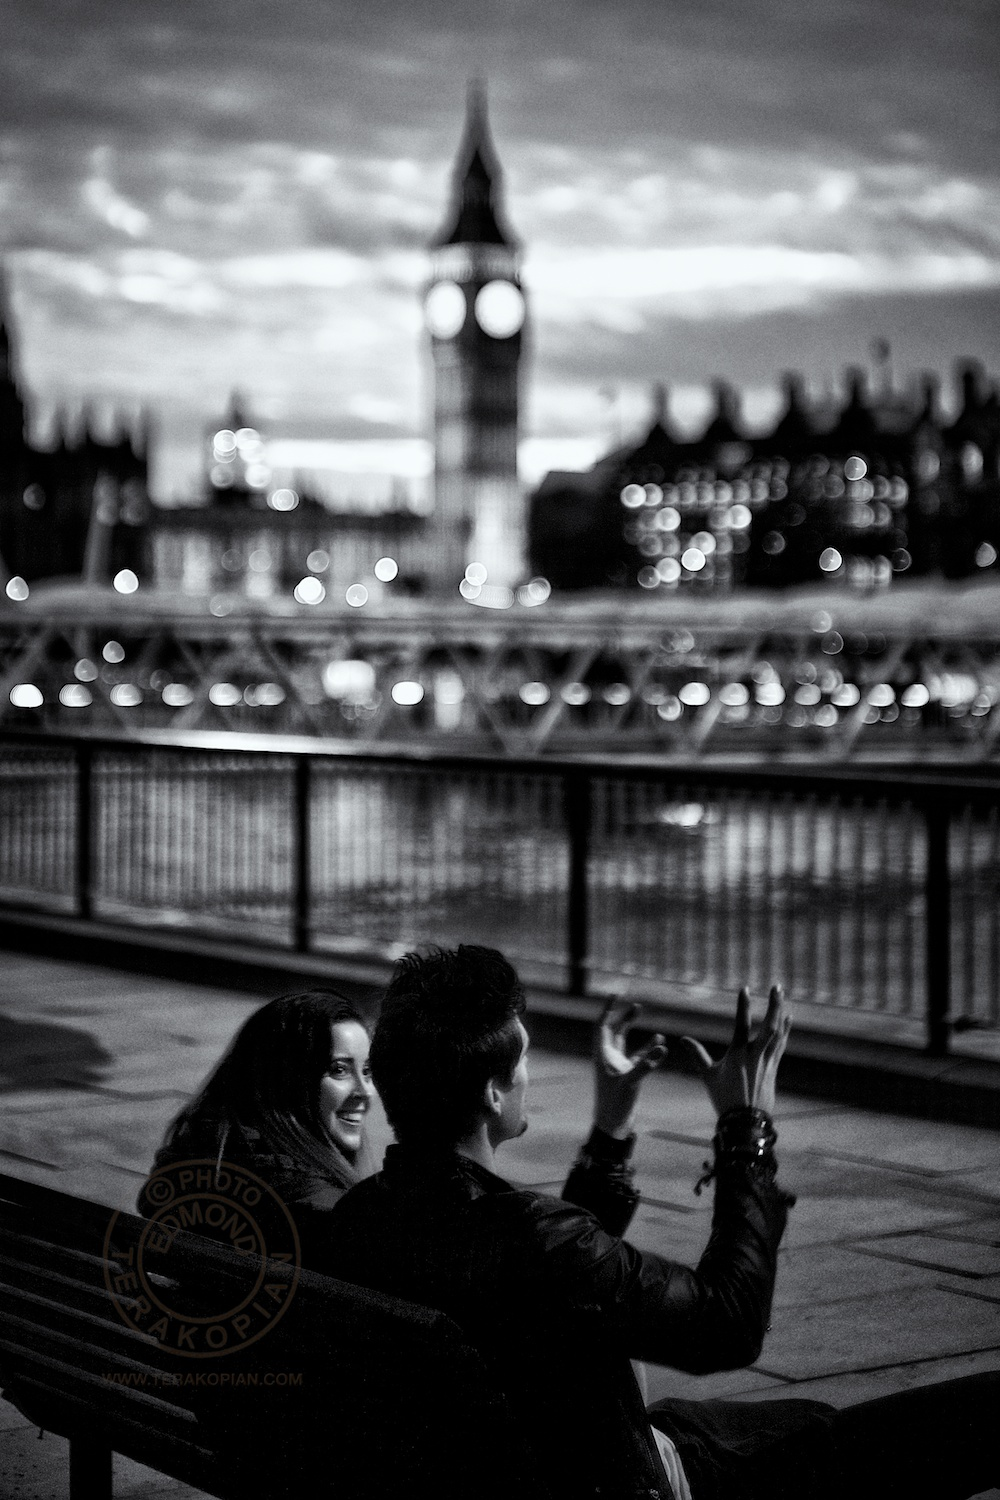 A couple of friends chatting on a bench. South Bank, London. November 05, 2013. Photo: ©Edmond Terakopian